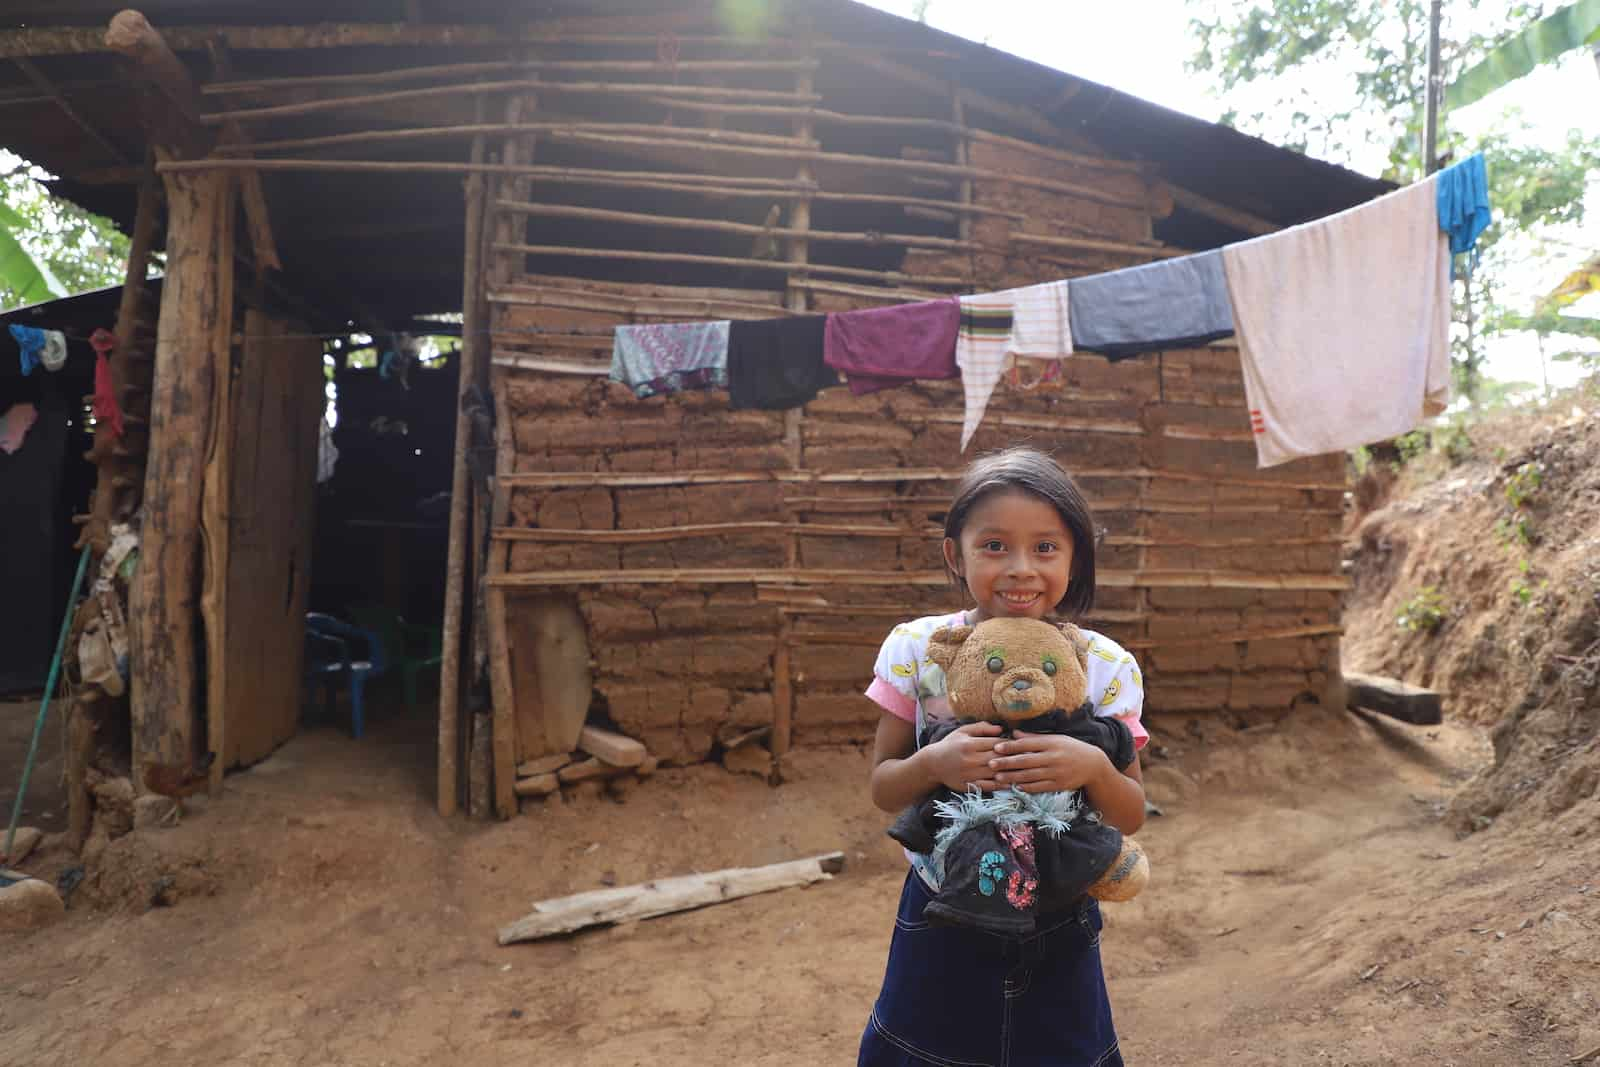 A girl holds a teddy bear, standing in front of a home in Central America made with mud and sticks. There are many holes in the walls. A laundry line hangs out front.